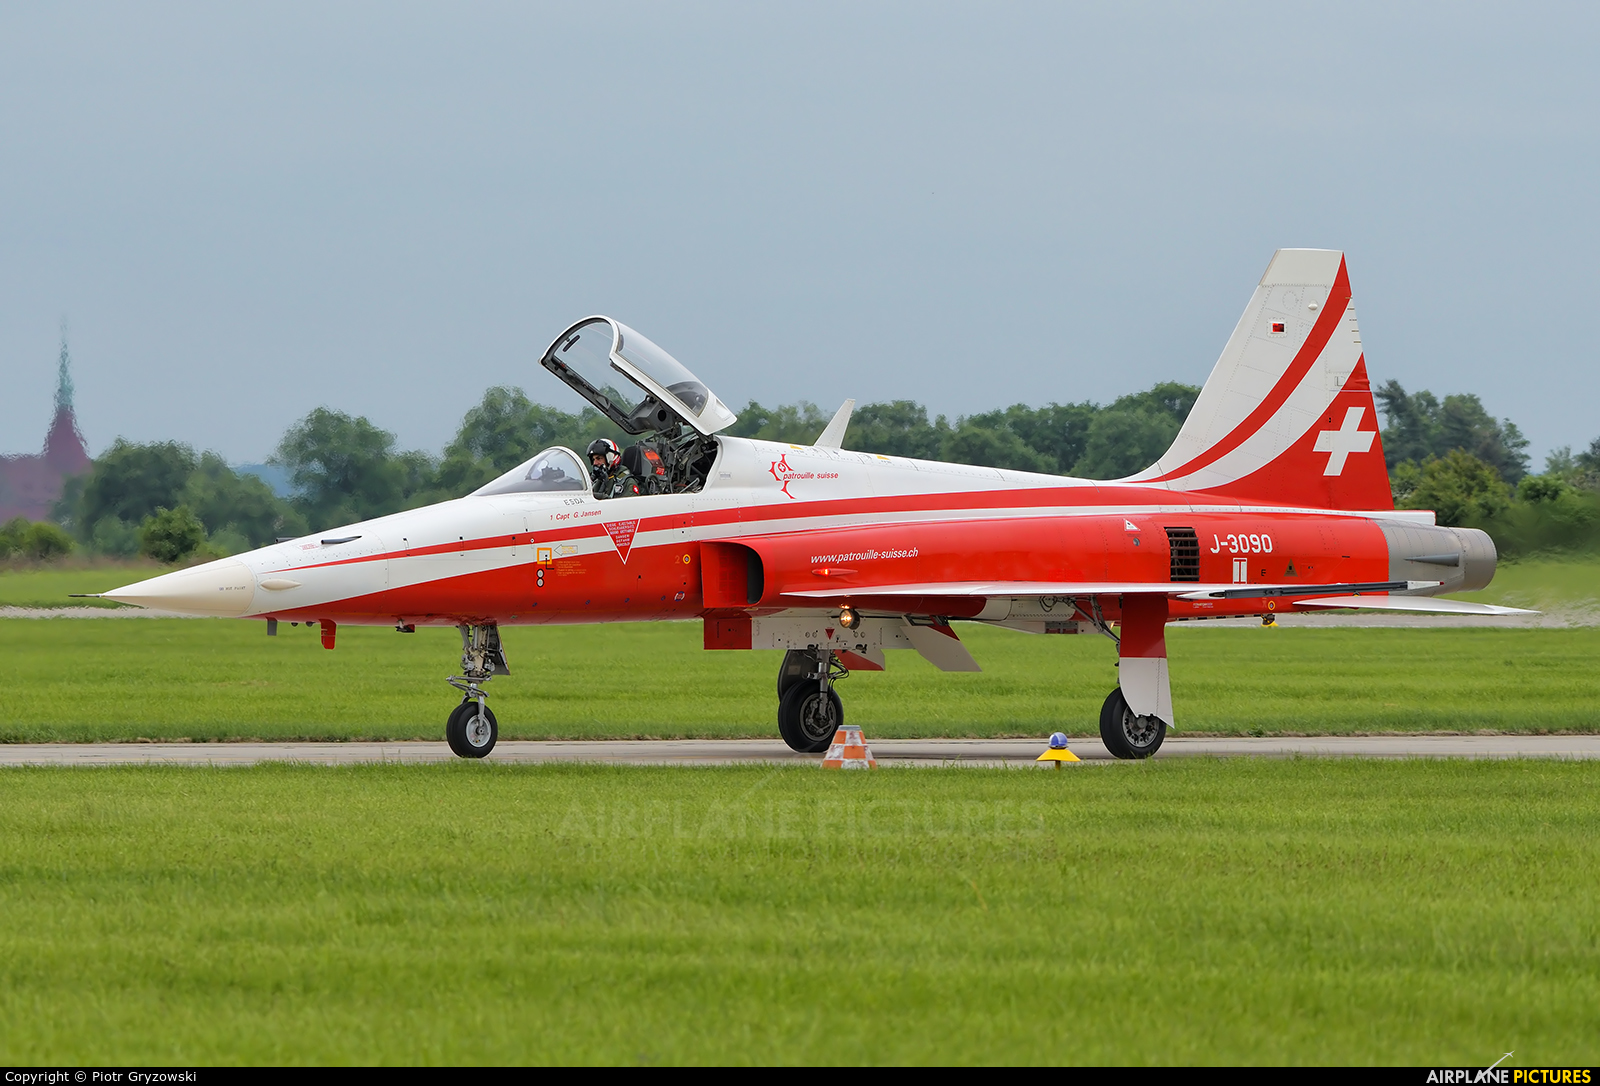 Switzerland - Air Force:  Patrouille de Suisse J-3090 aircraft at Čáslav